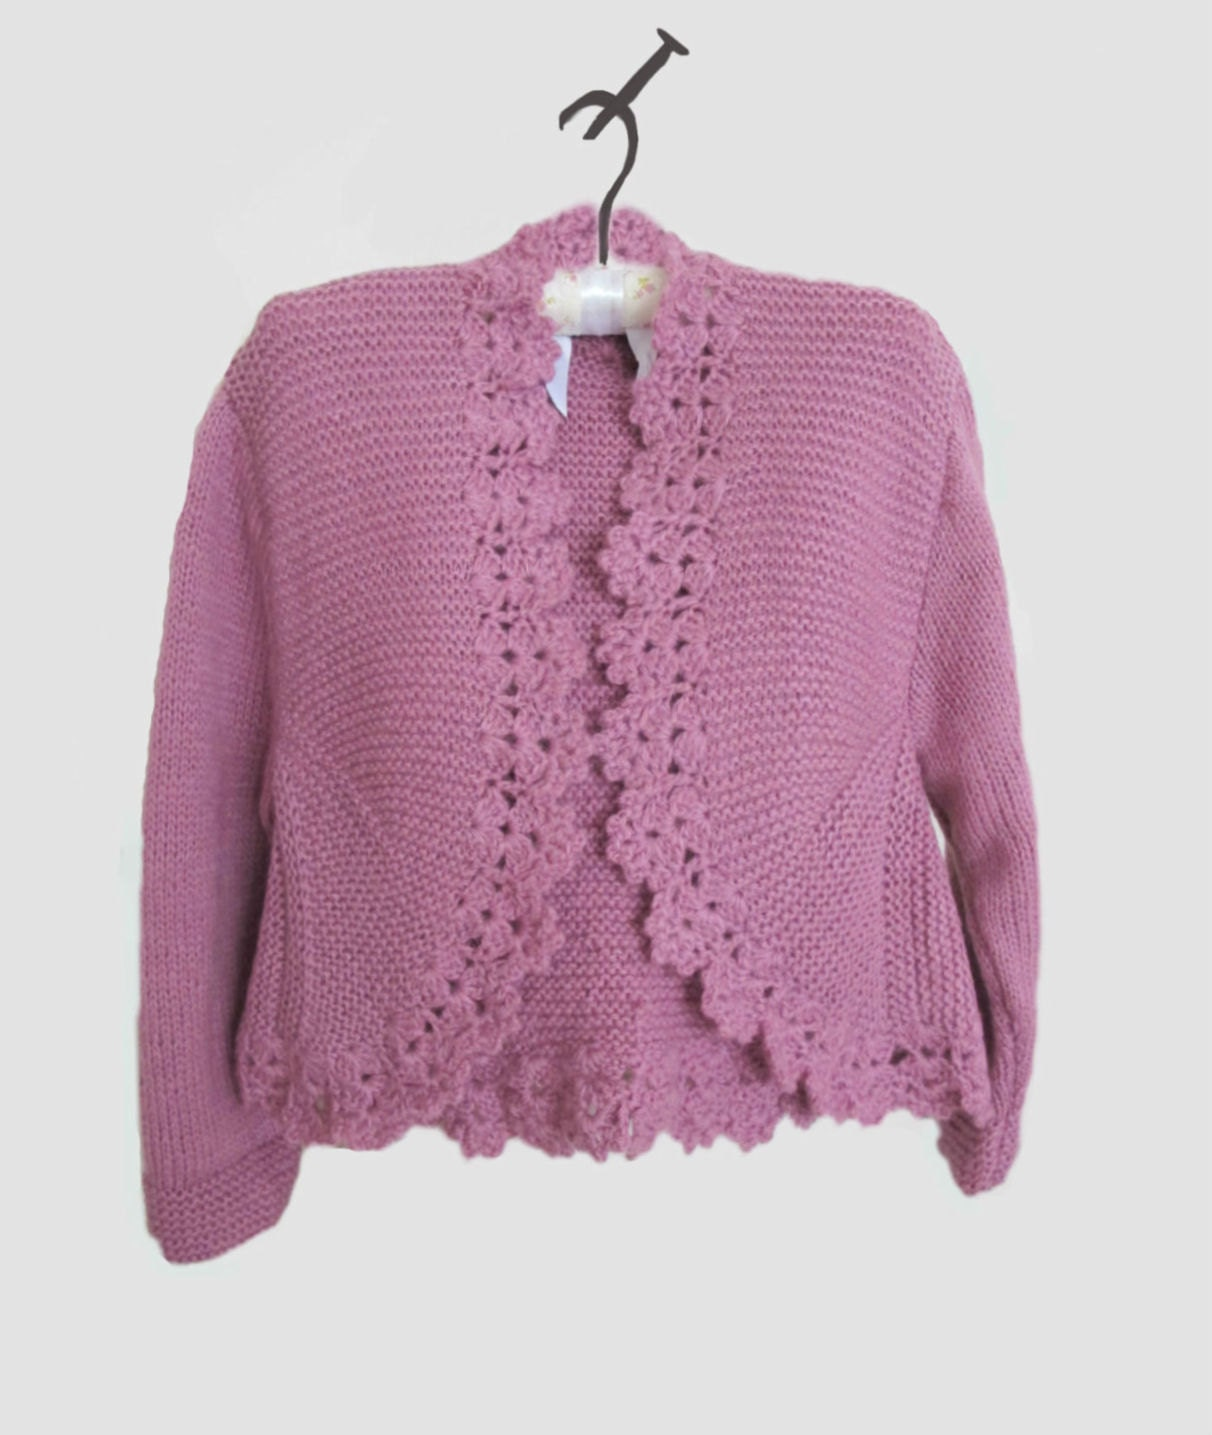 One Piece Sweater Knitting Pattern : CROCHET KNIT SWEATER   Crochet For Beginners